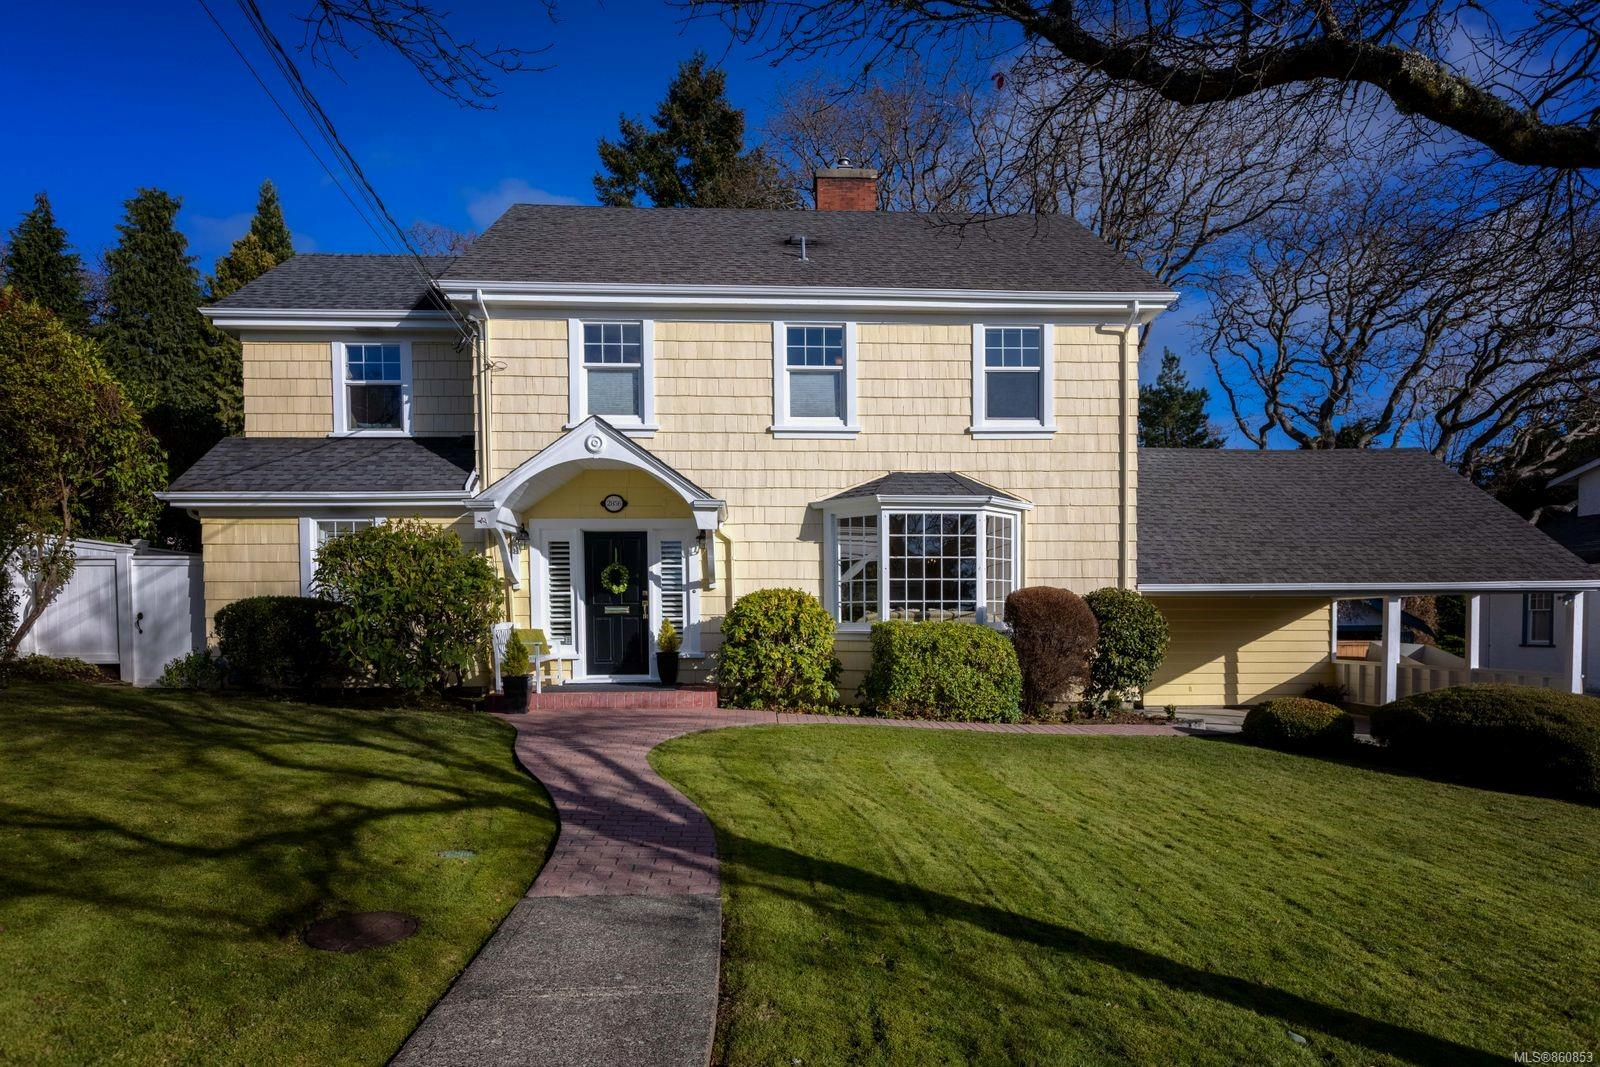 """Pleased to offer this elegant quintessential Oak Bay family home. Bordering prestigious Uplands & situated on a flat 9600 sq/ft lot, be impressed w/the pride of ownership shown in restoring this beautiful estate. Boasting an updated kitchen w/shaker custom cabinetry, granite counters, Wolf dual-fuel range & breakfast bar. A lovely Living Room w/crown moldings, custom crafted mantle & a gas fireplace, perfect for cozy evenings! While a large family room/home office w/a 3rd bath finishes off the main. Up one level find the Master w/Ensuite, 2 more Beds & 3rd Bath. The top floor presents options; use as a rec/media room & Den or 4th Bed for the teenager or your nanny! The basement has been finished to include a home gym, hobby room & workshop! The fenced rear yard boats a brand new executive """"she shed,"""" while a large patio is located directly off the kitchen. Lots of parking & storage, mins to Estevan Village, Willows Beach & School, Uplands Park & UVIC. Truly a special property!"""